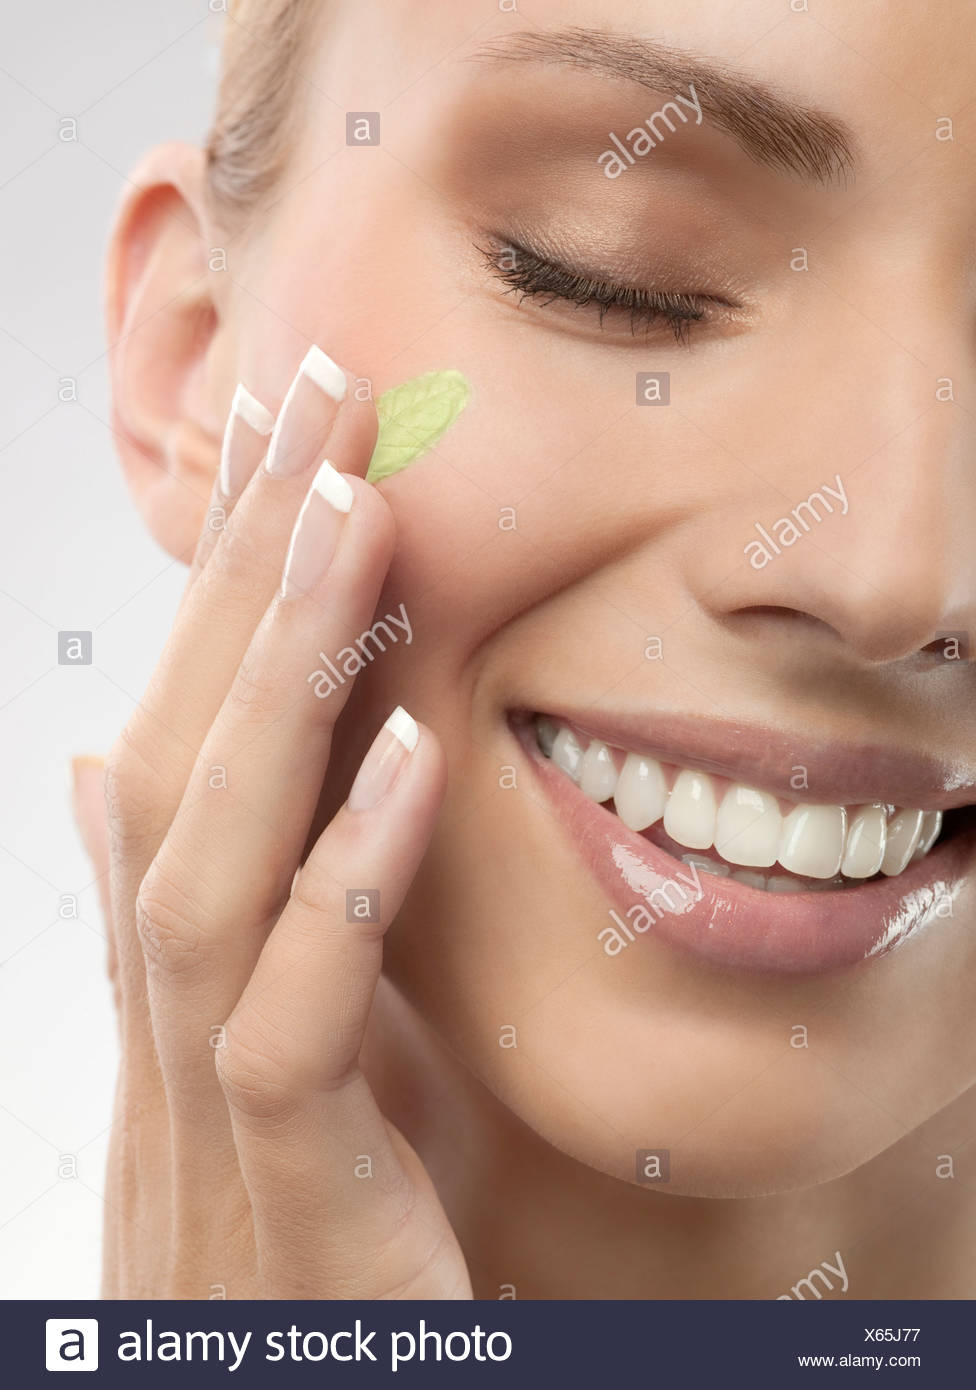 A woman putting green cream on her face - Stock Image